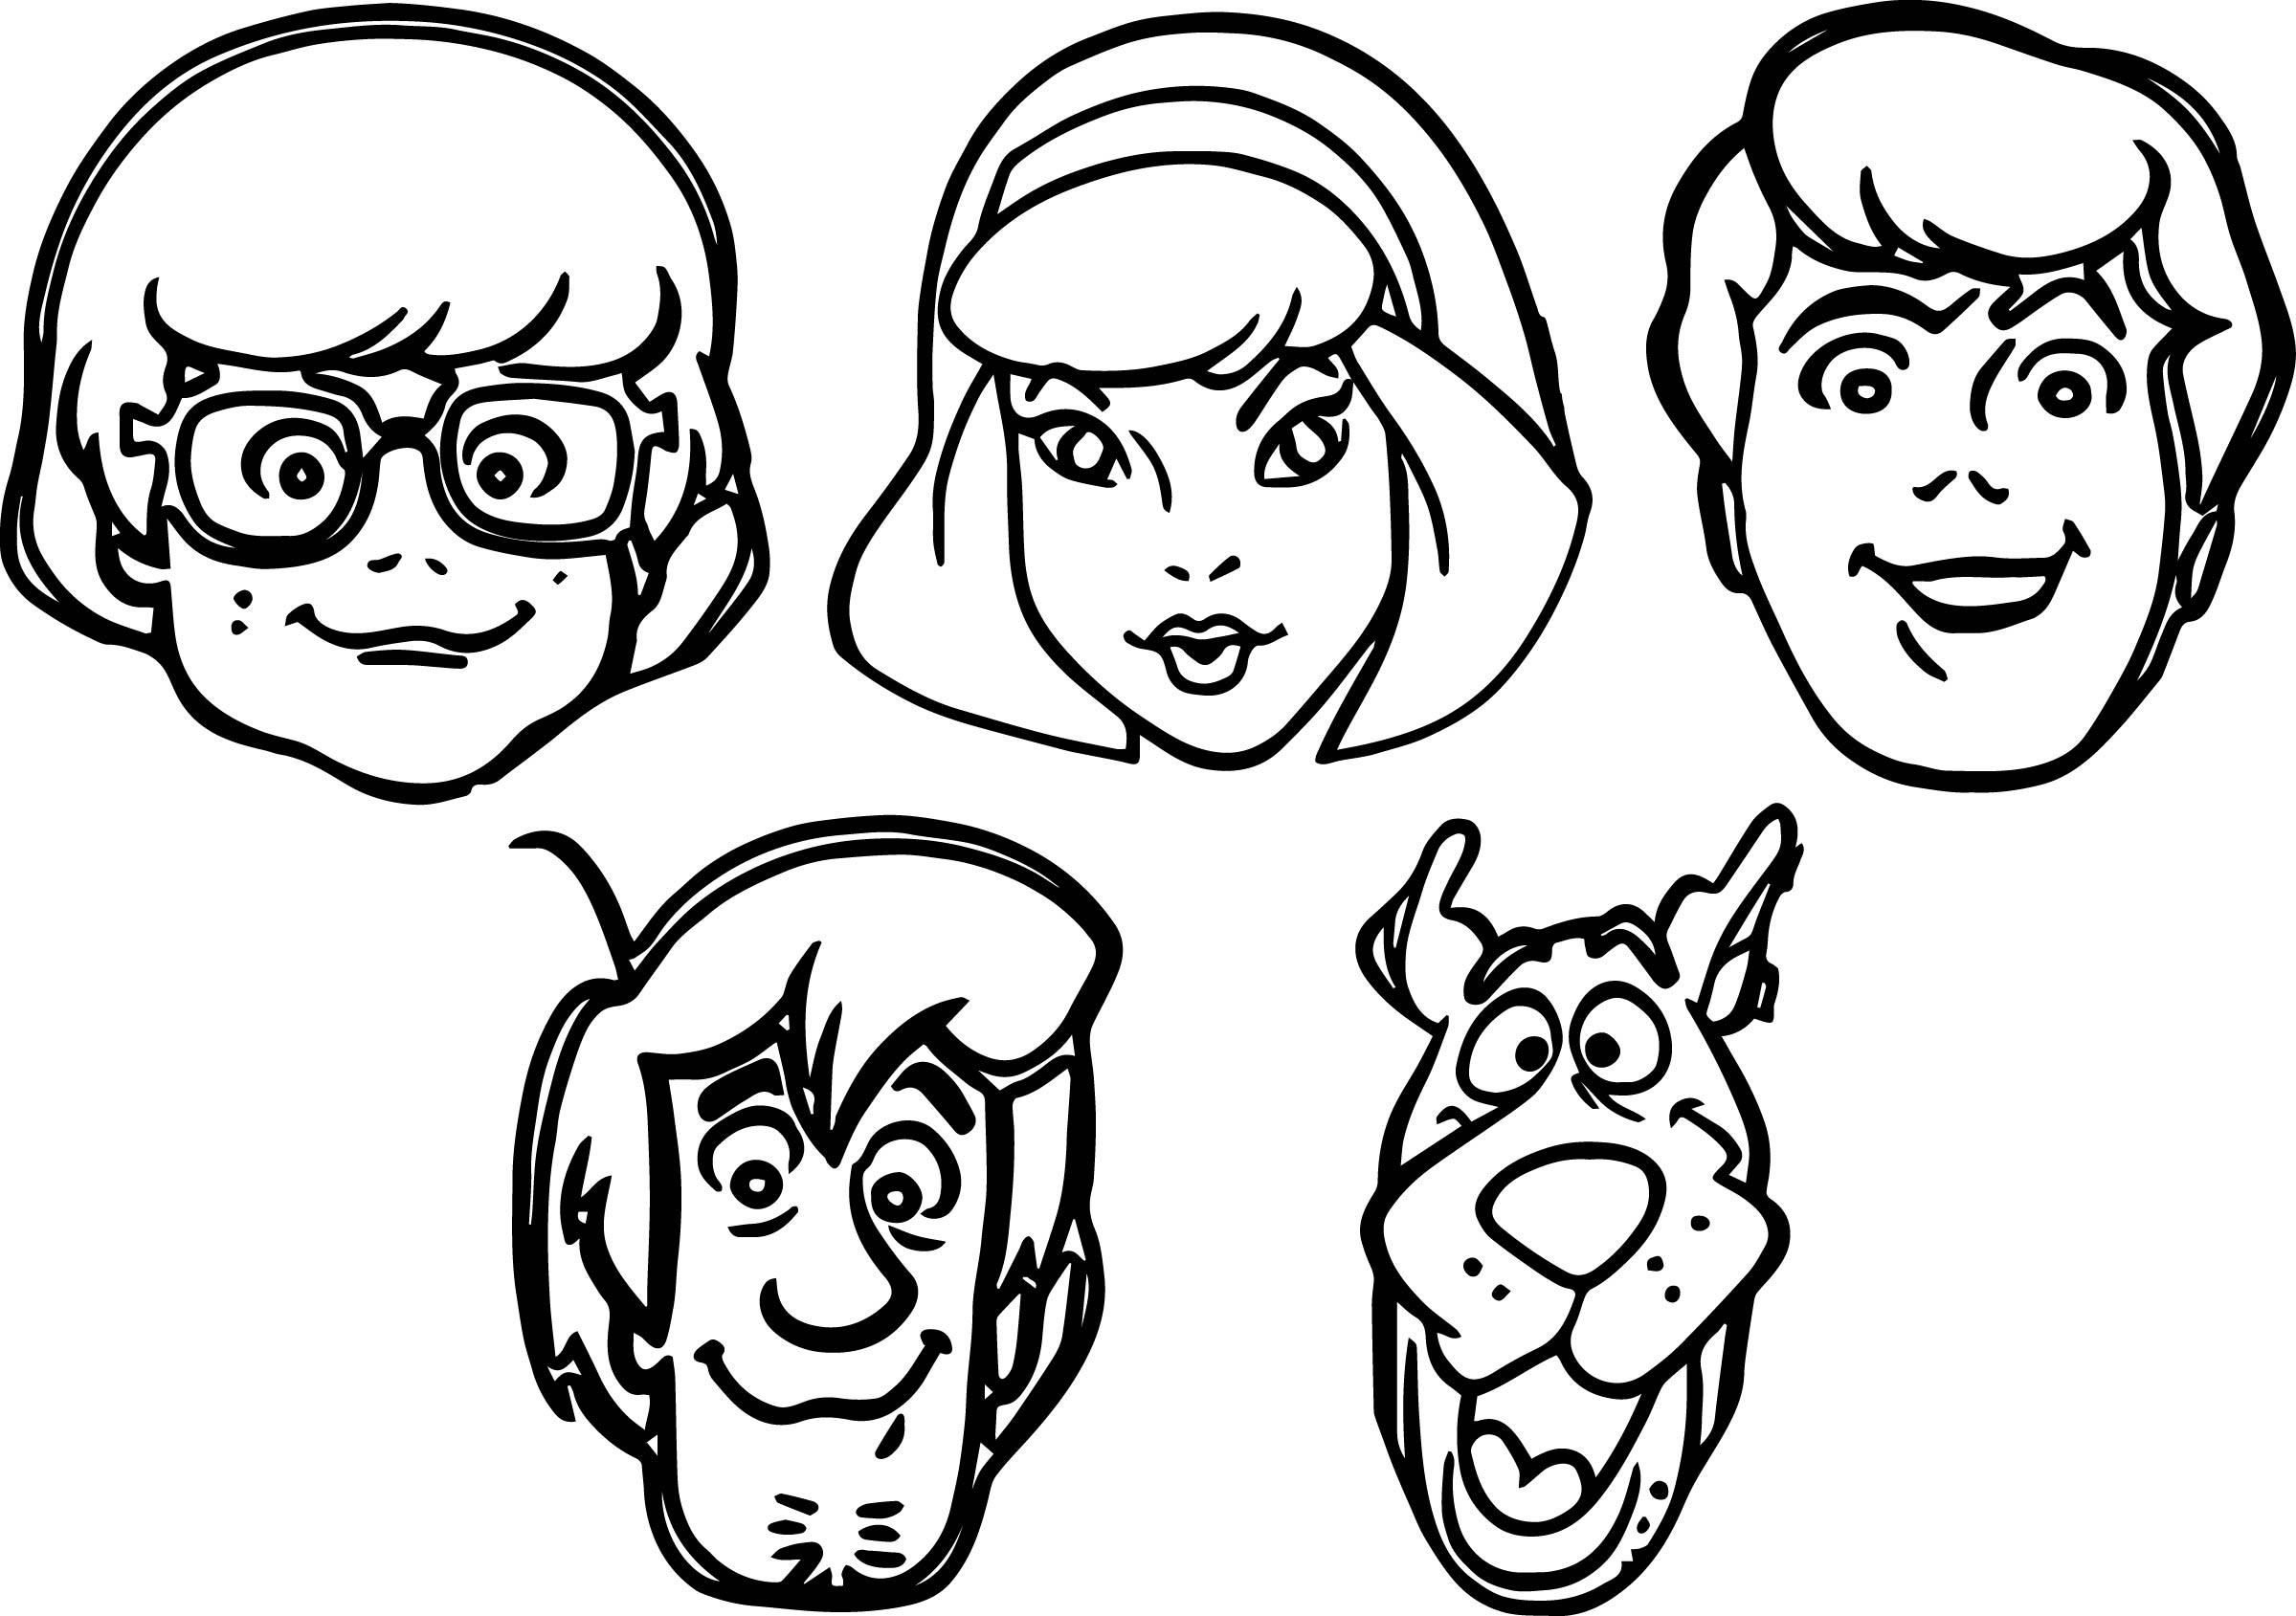 scooby coloring pages - scooby doo all character face coloring page